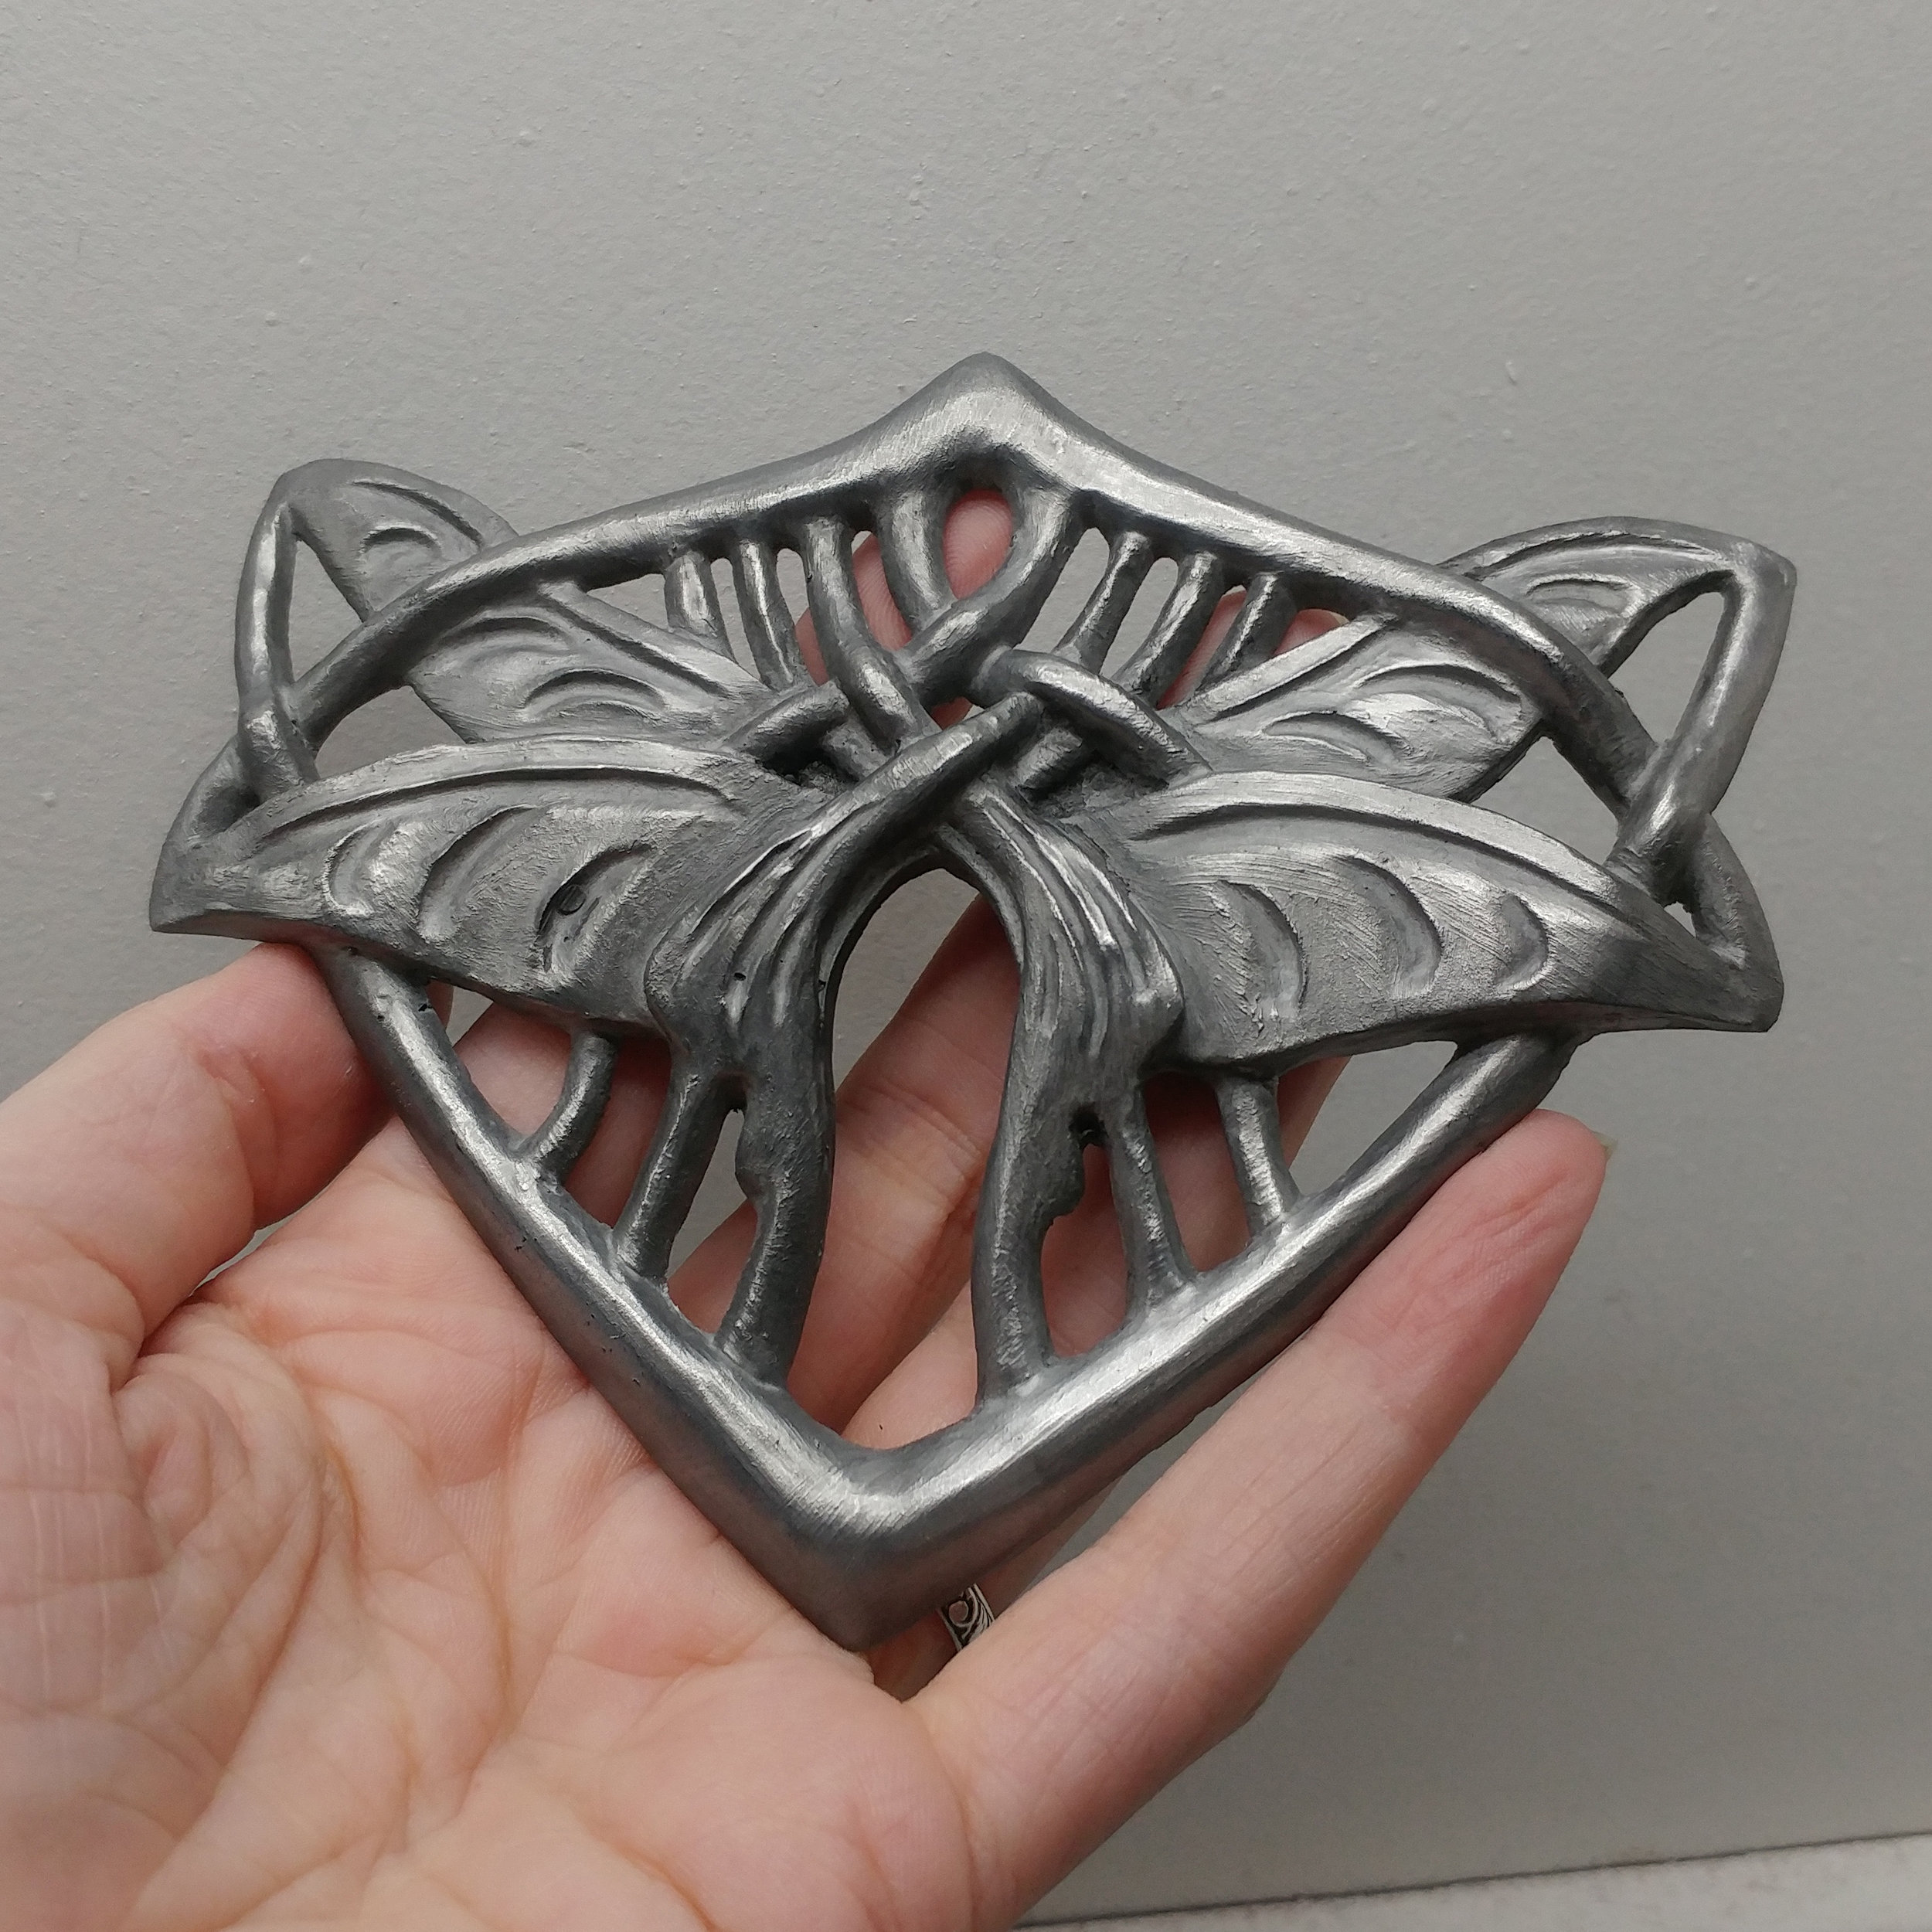 The finished buckle made with resin